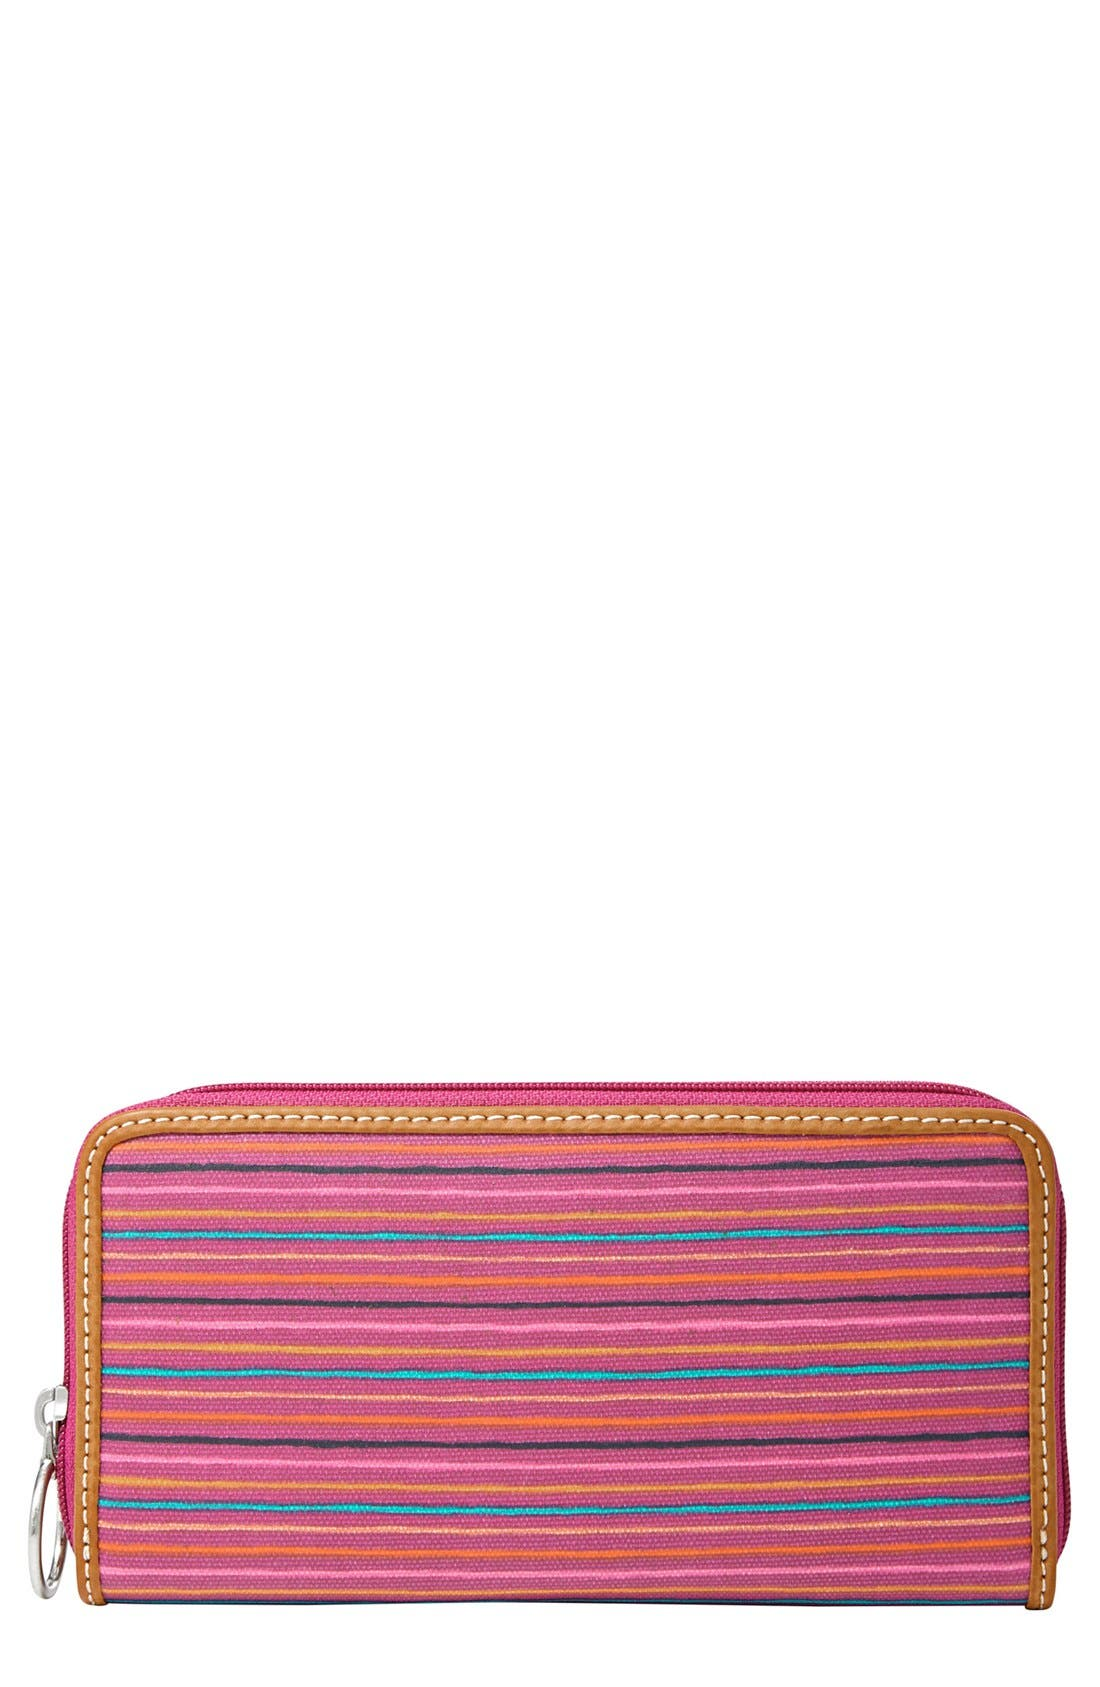 Alternate Image 1 Selected - Fossil 'Key-Per' Coated Canvas Clutch Wallet